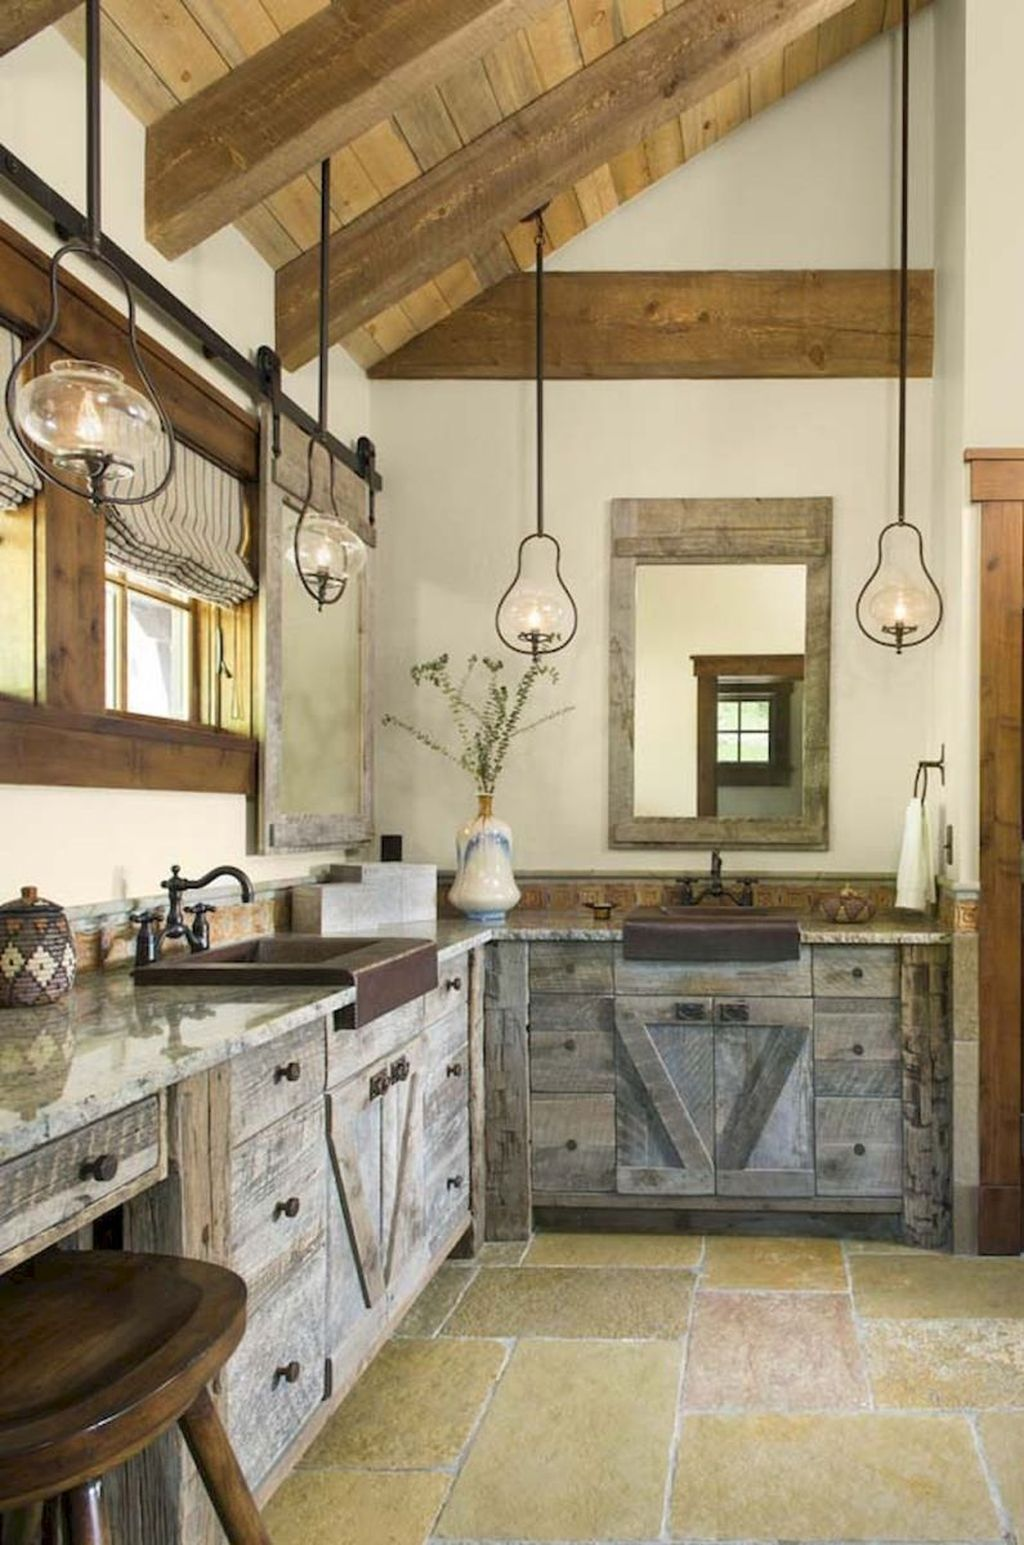 Awesome 30 Rustic Farmhouse Barn Wood Kitchen Ideas Https Homstuff Com 2018 01 11 30 Farmhouse Style Kitchen Cabinets Rustic Farmhouse Kitchen Rustic Kitchen